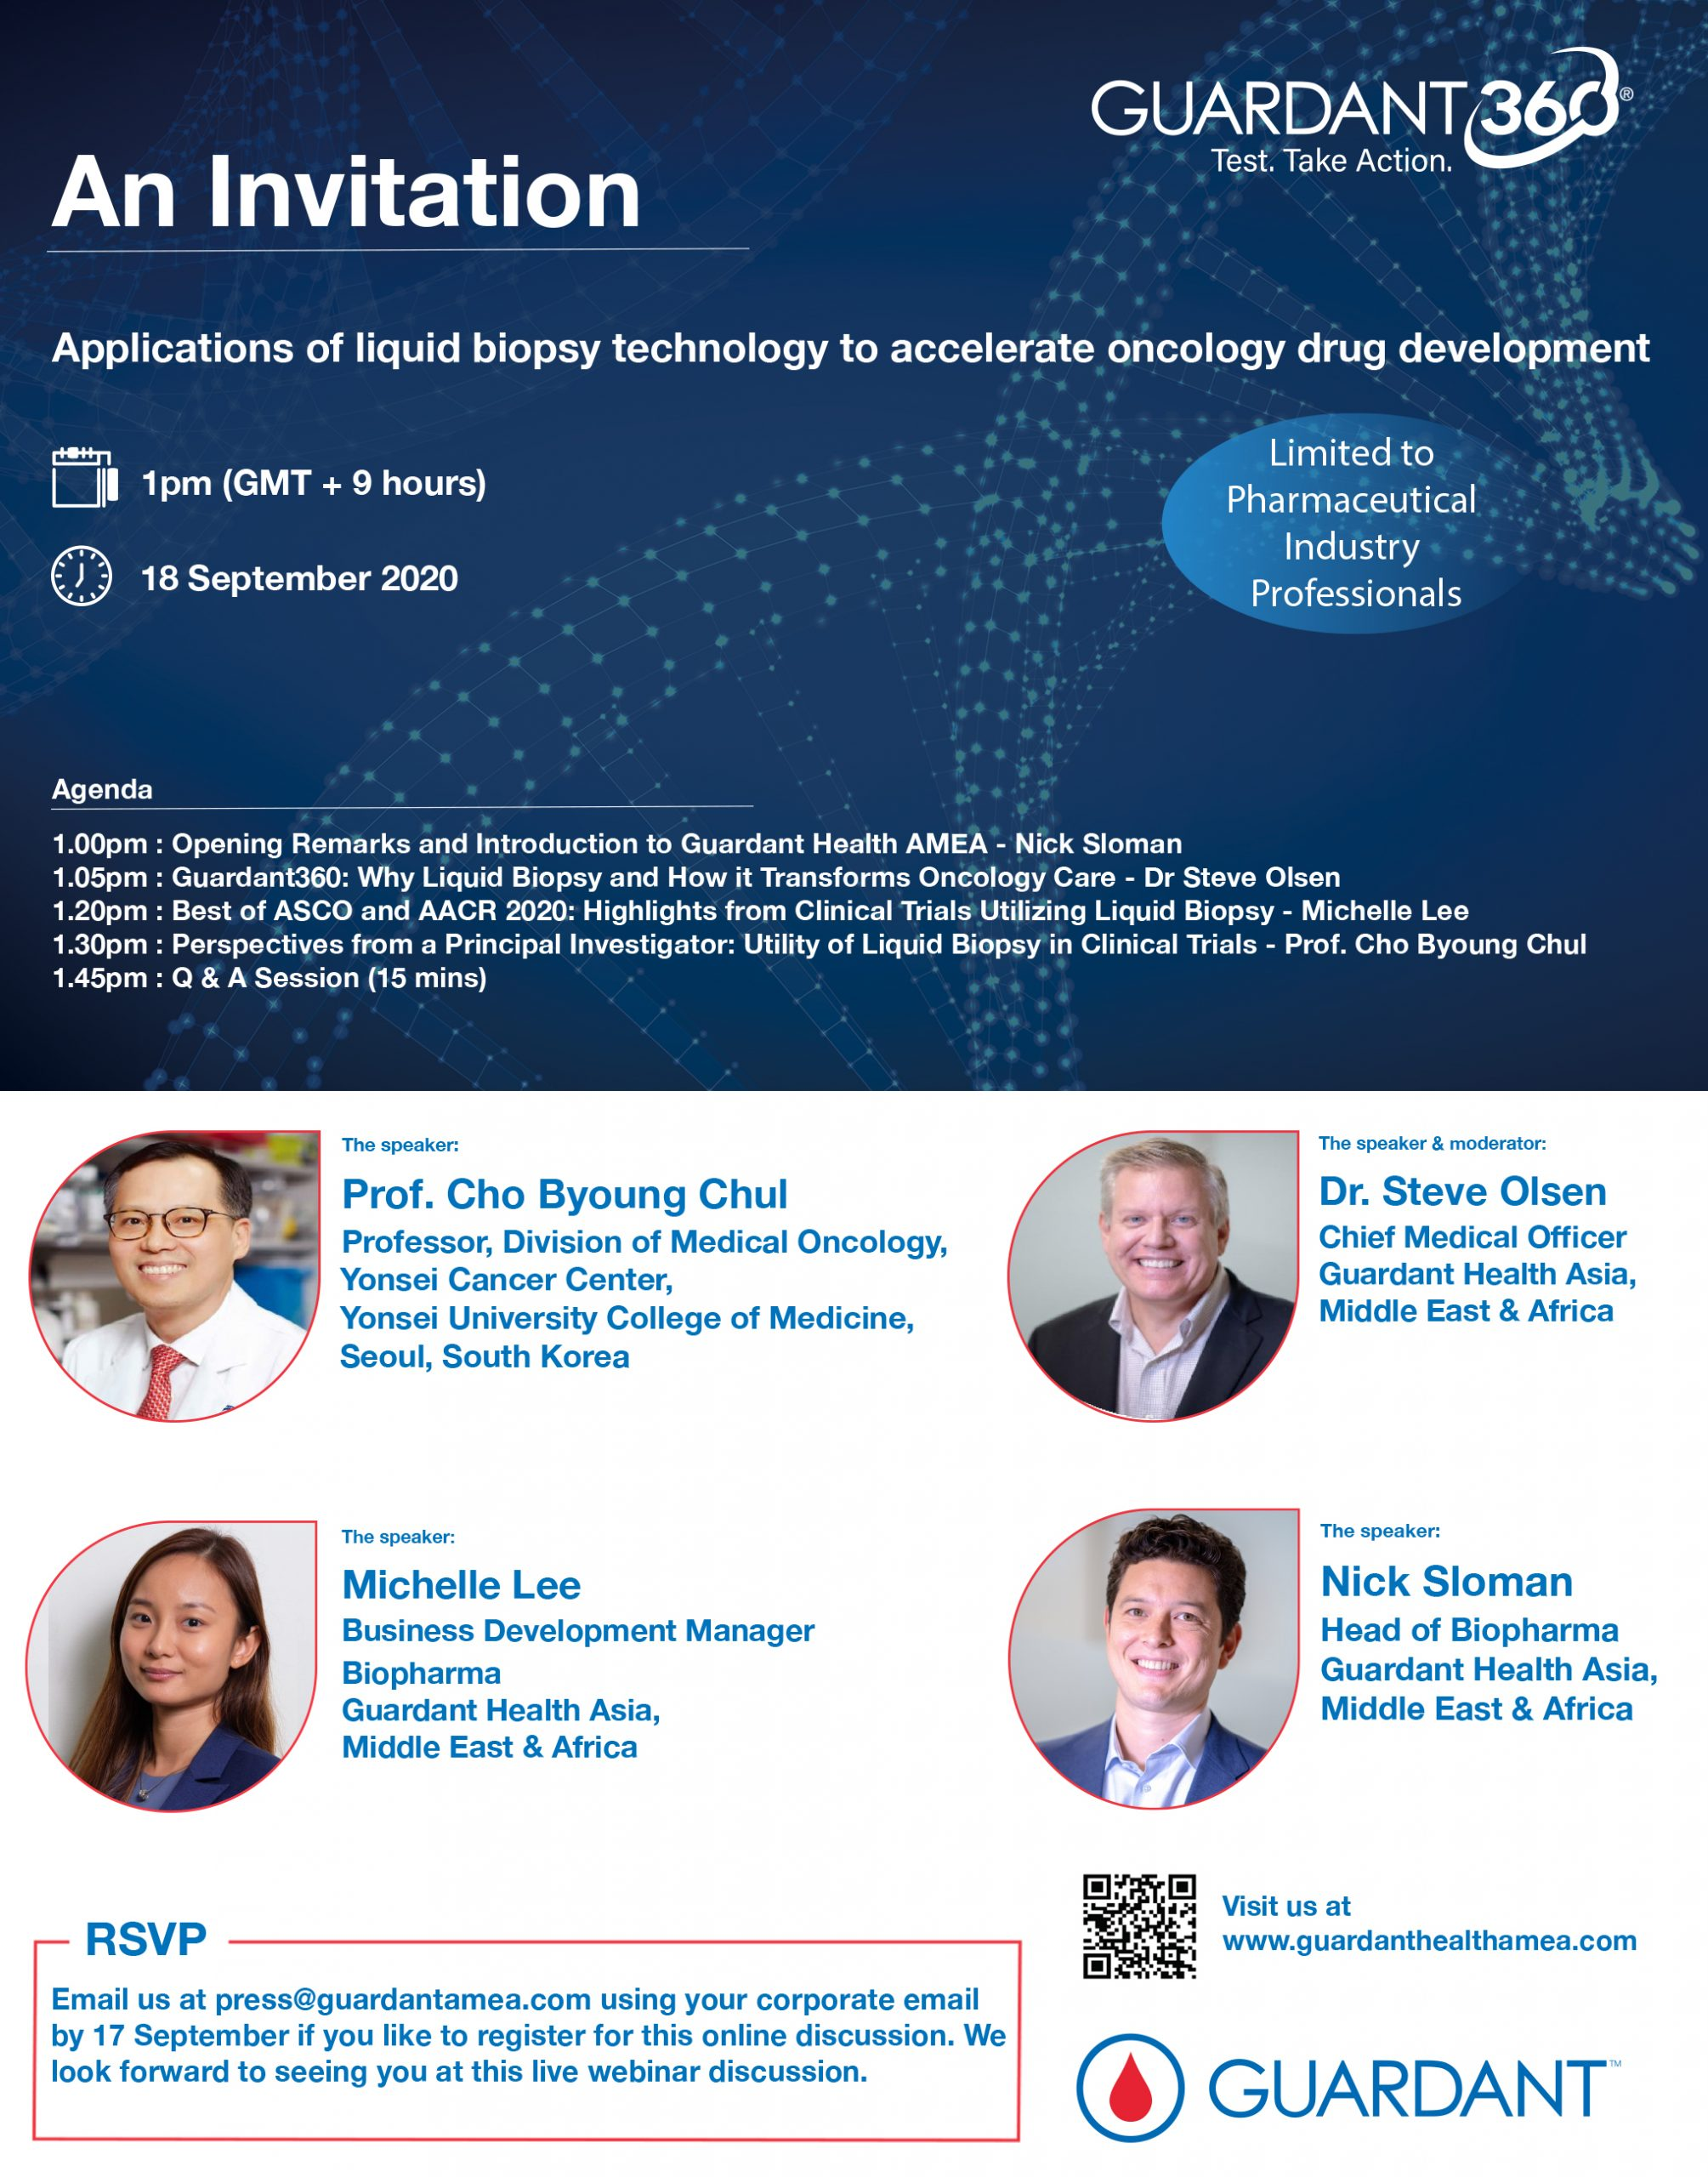 Applications of liquid biopsy technology to accelerate oncology drug development